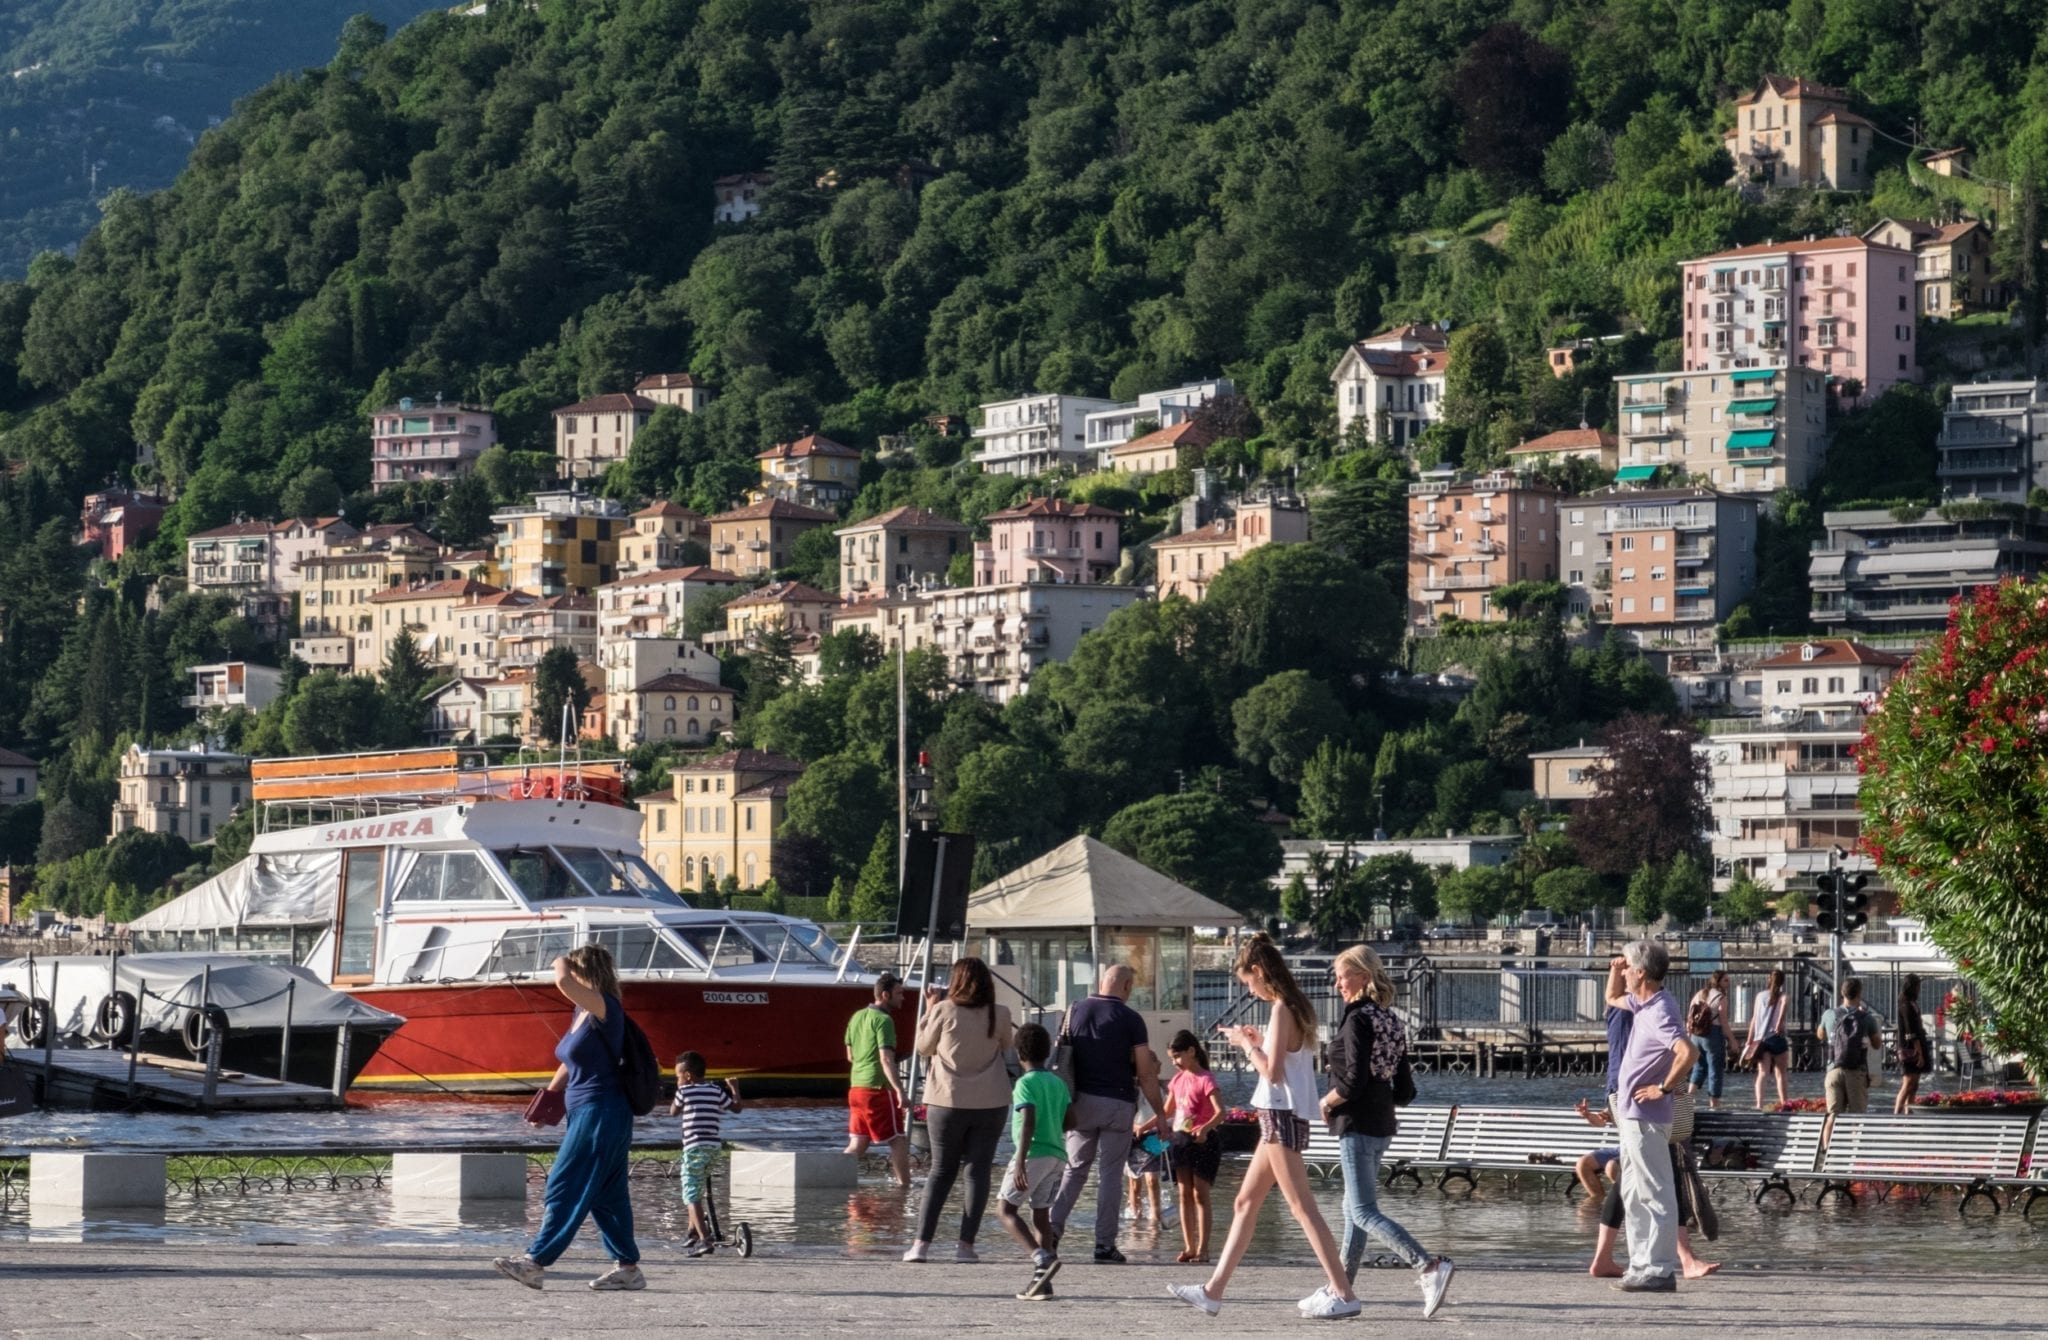 People walk on a piazza in front of buildings nestled into the hills of Lake Como.